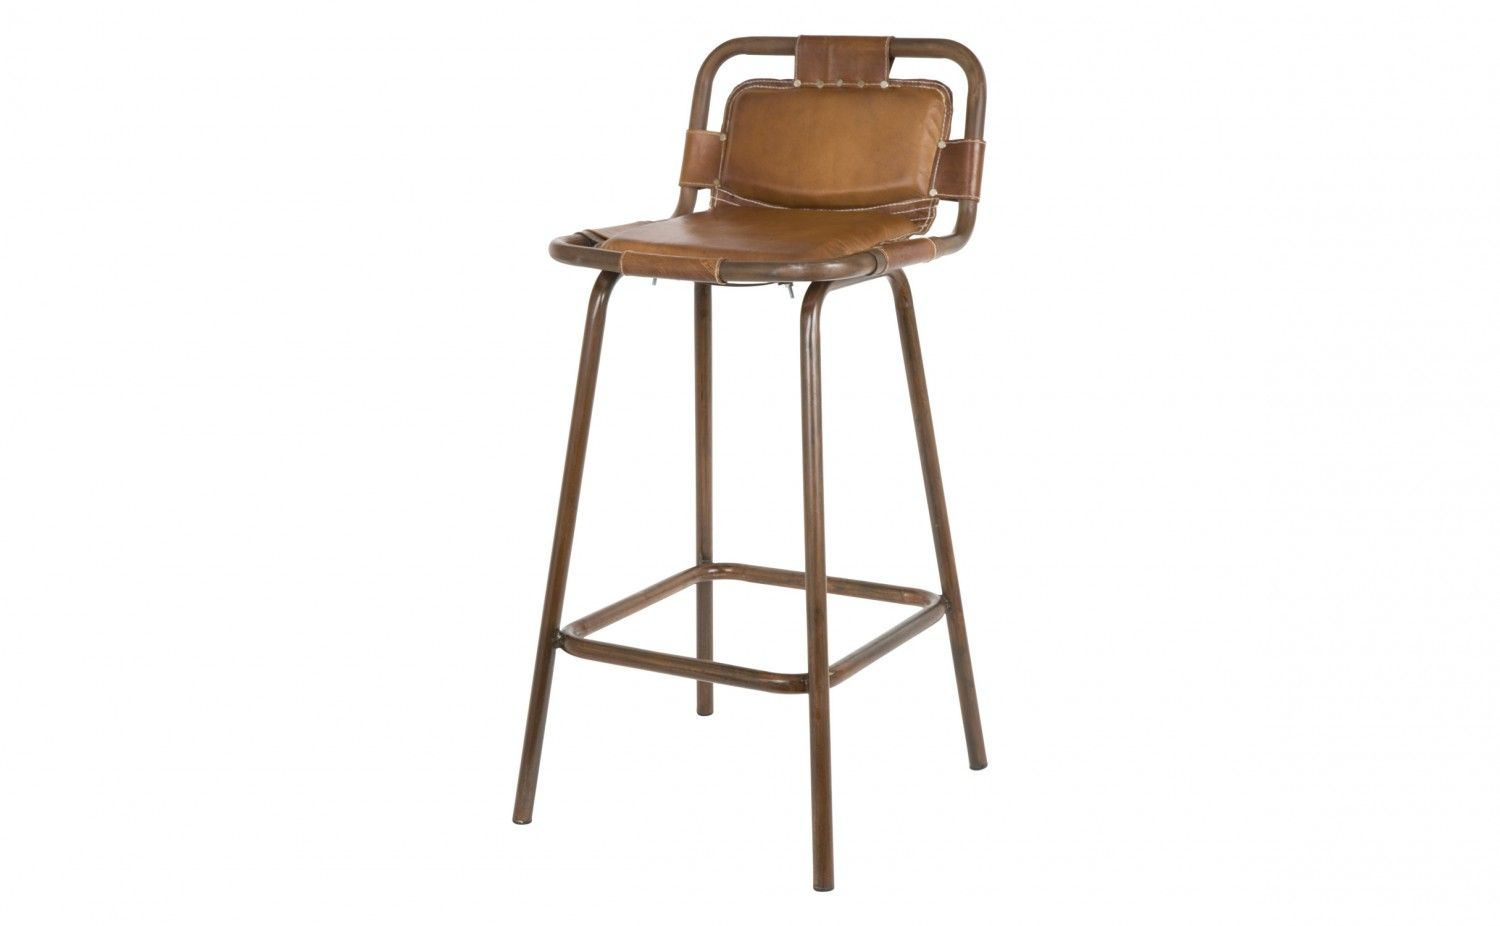 Outstanding Distressed Leather Upholstery Steel Frame Sling Like Sit Gmtry Best Dining Table And Chair Ideas Images Gmtryco